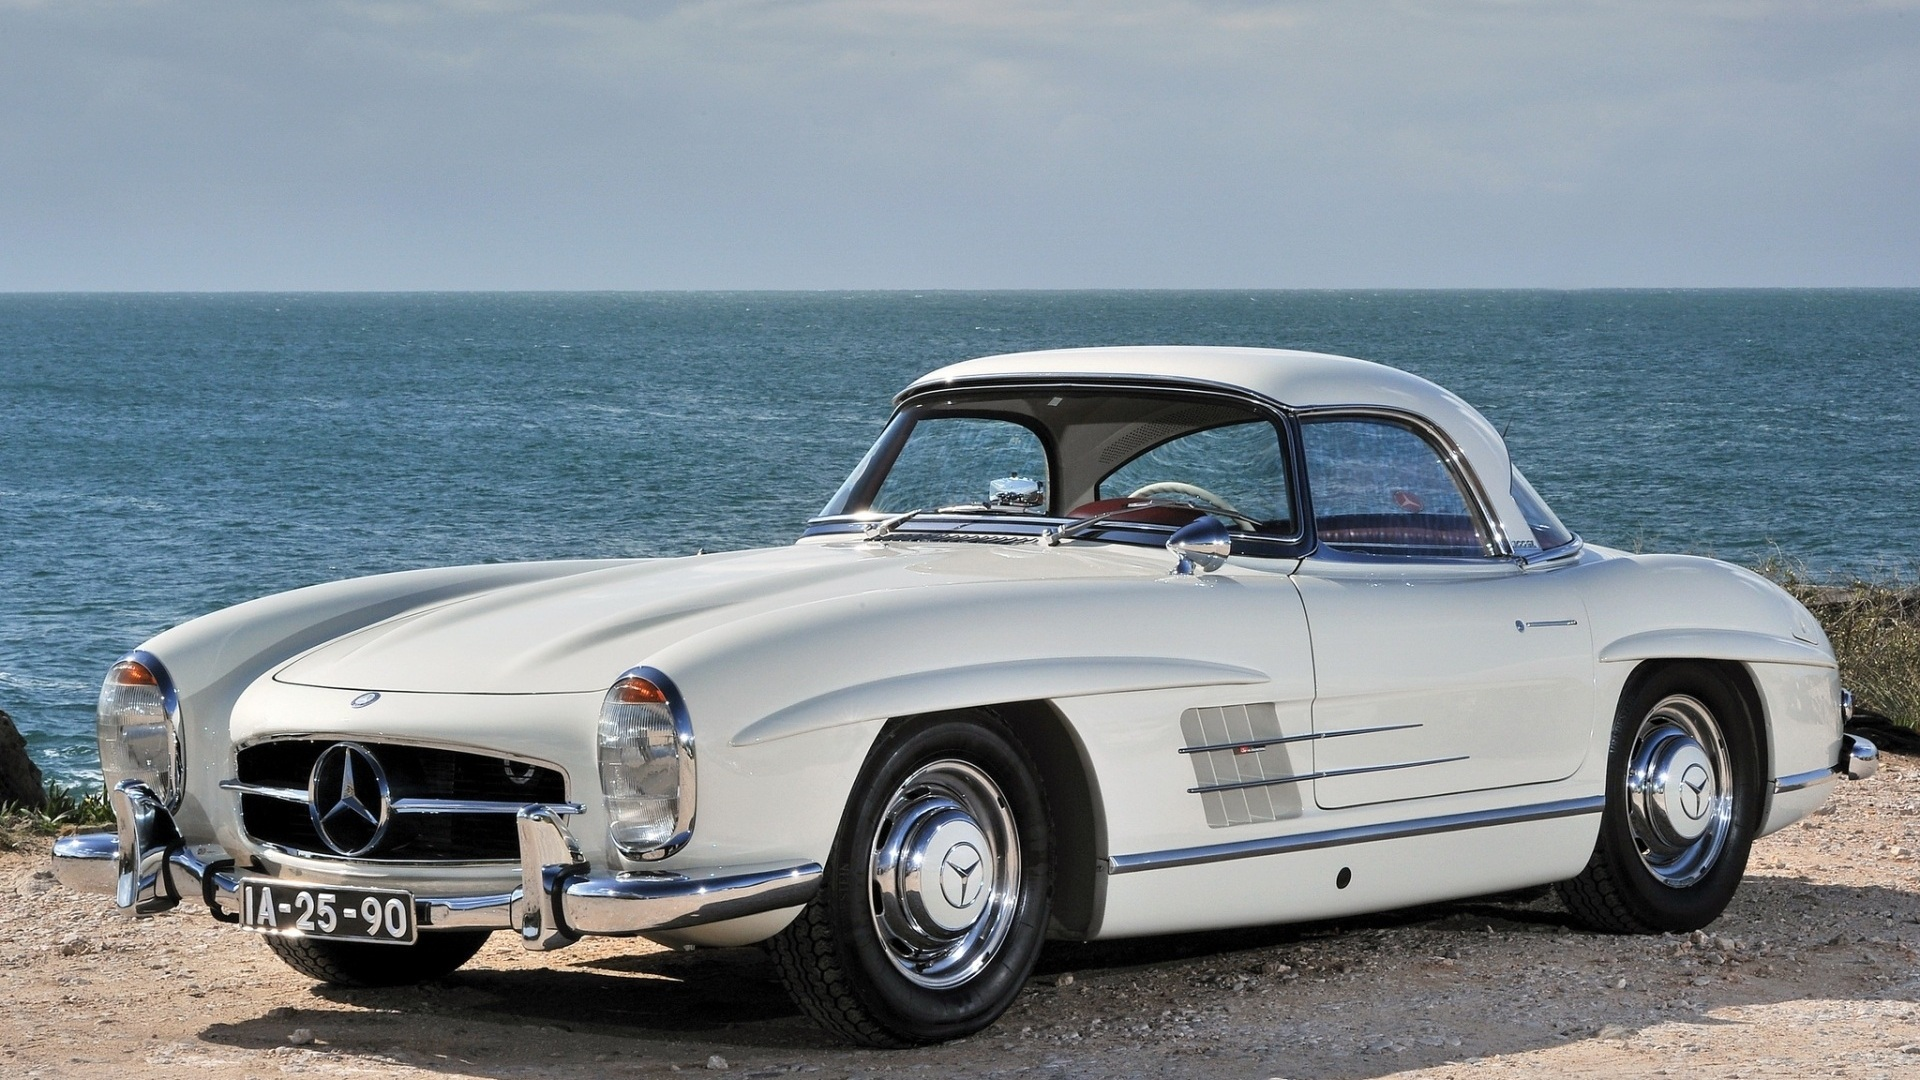 mercedes benz 300 sl wallpapers images photos pictures On mercedes benz 300 sl